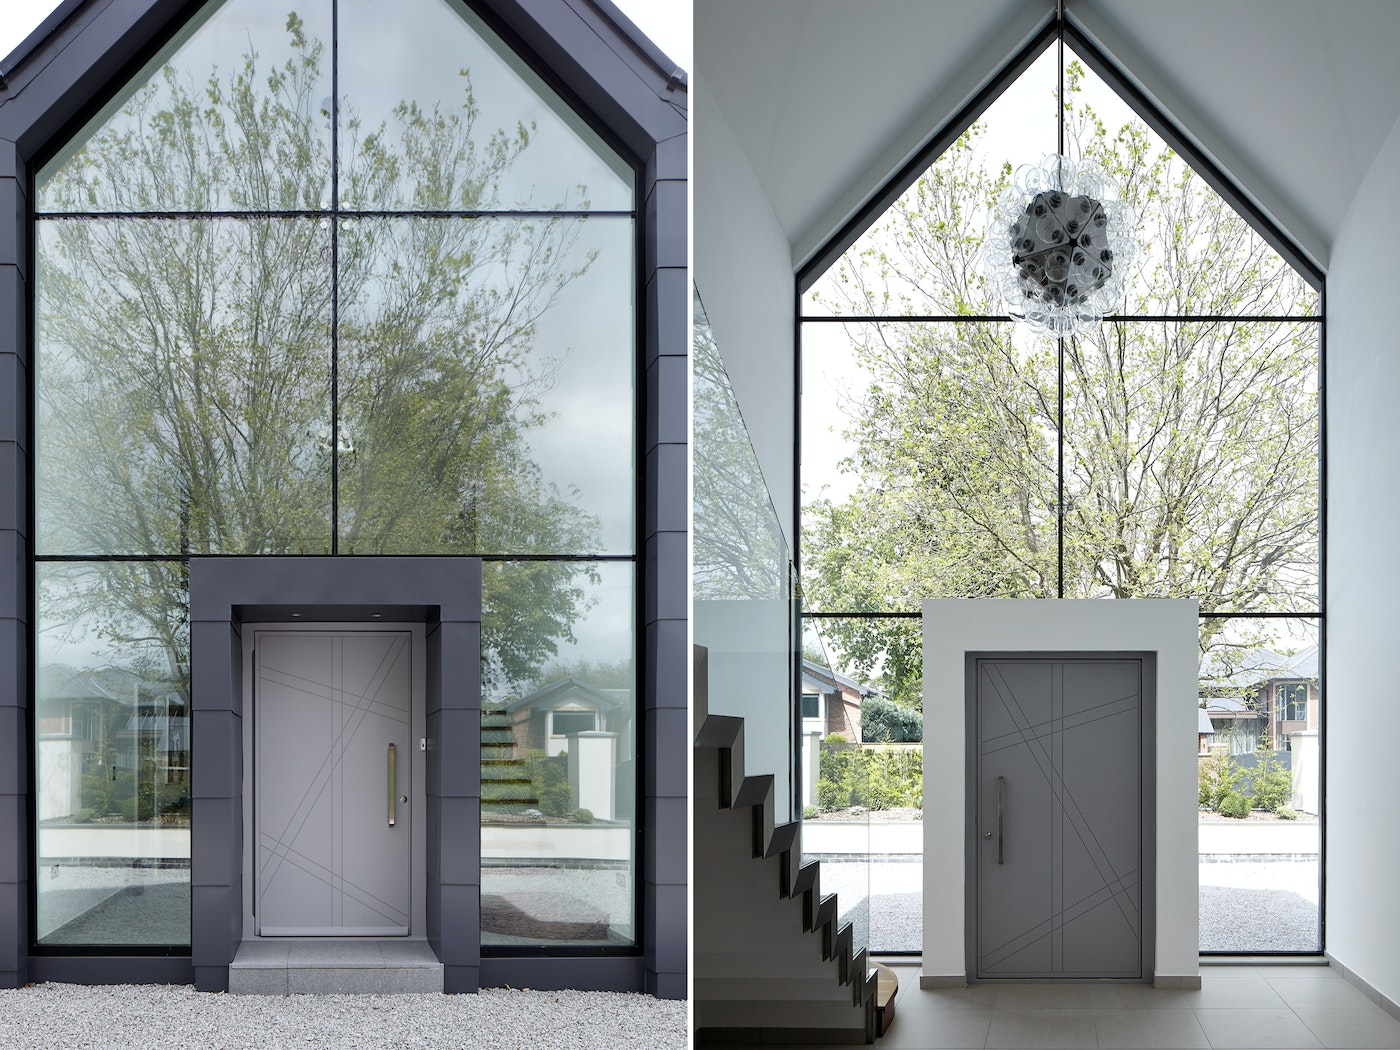 If it's a grand entrance you're after, this is the door setting you're looking for